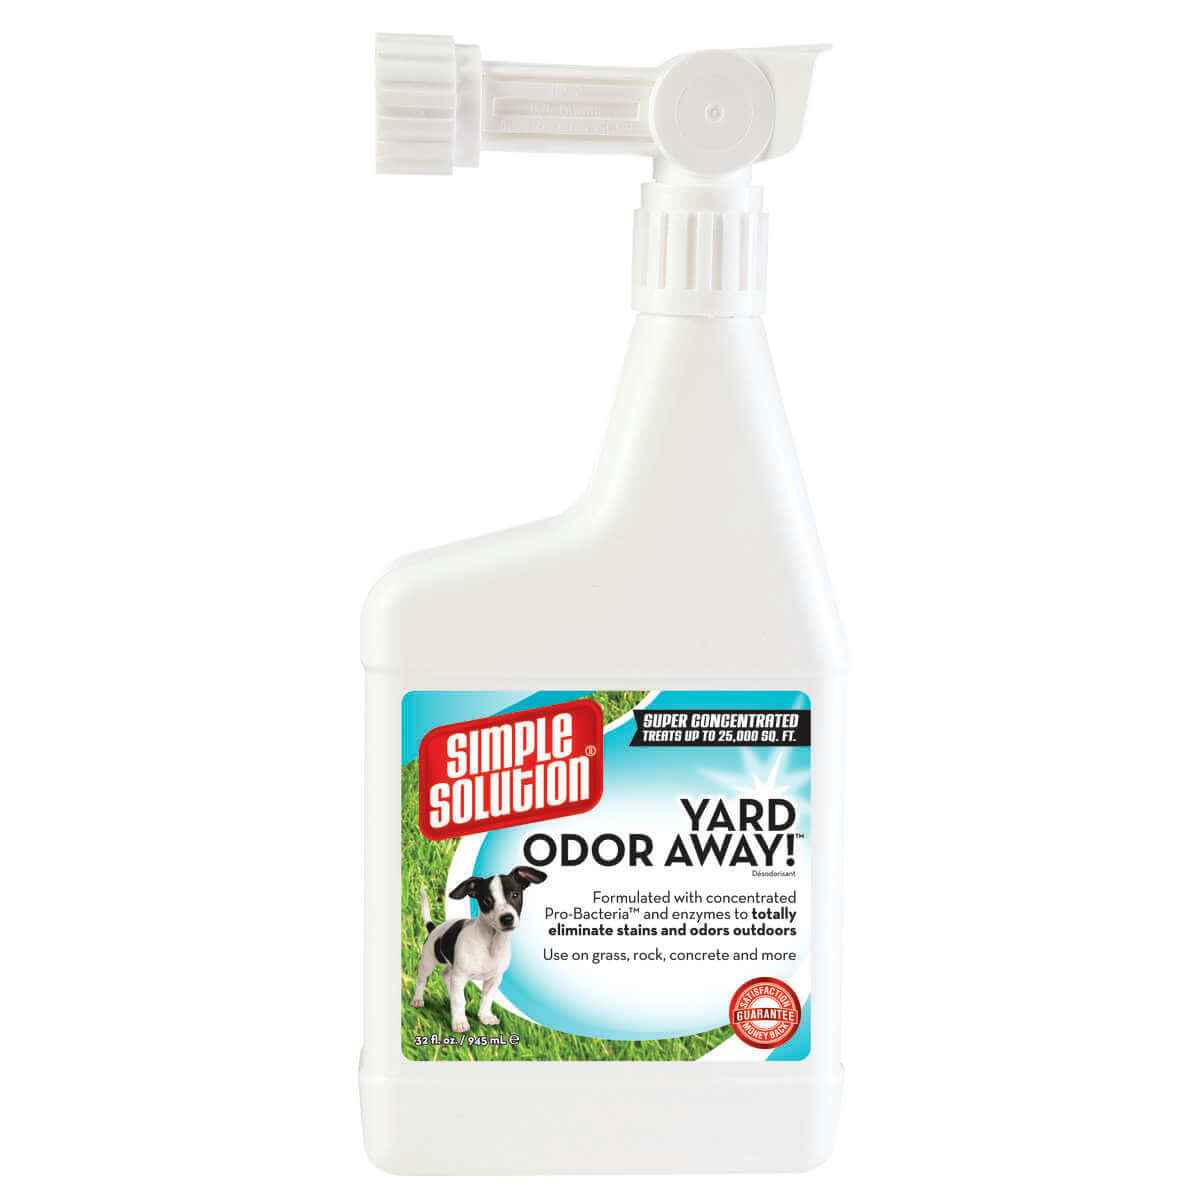 Simple Solution Yard Odor Away Hose Spray Concentrate 32oz White 2.25